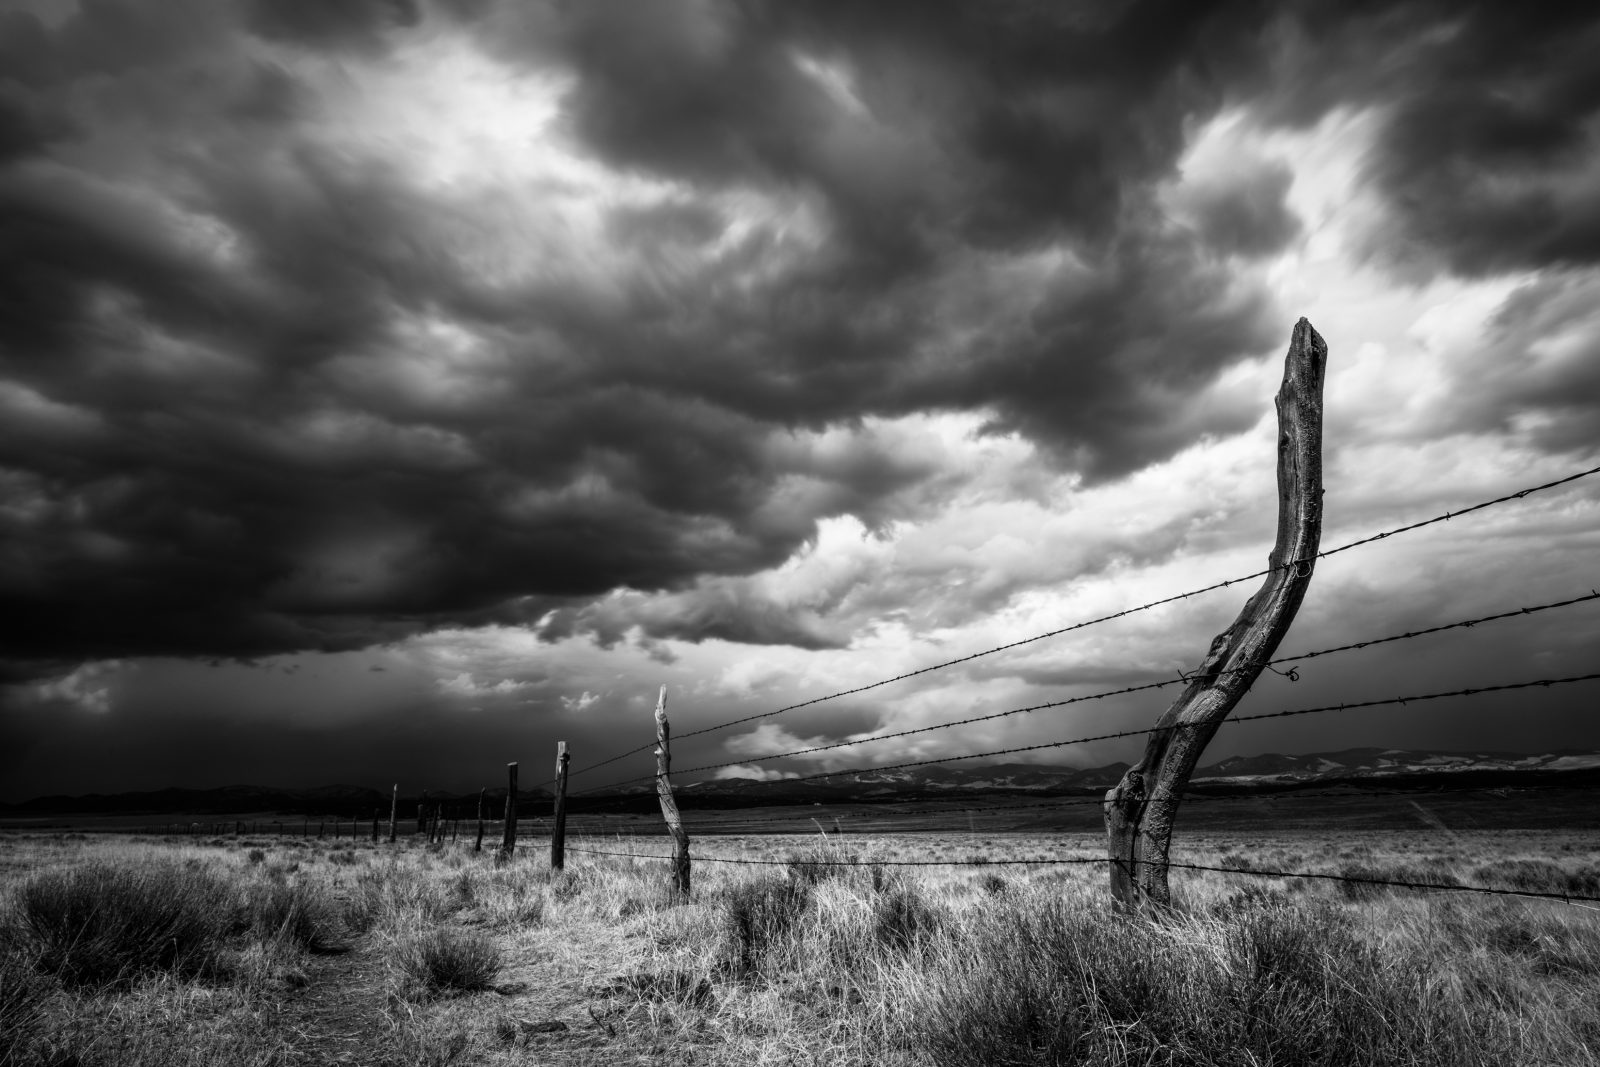 Angry Sky and Old Ranch Fence